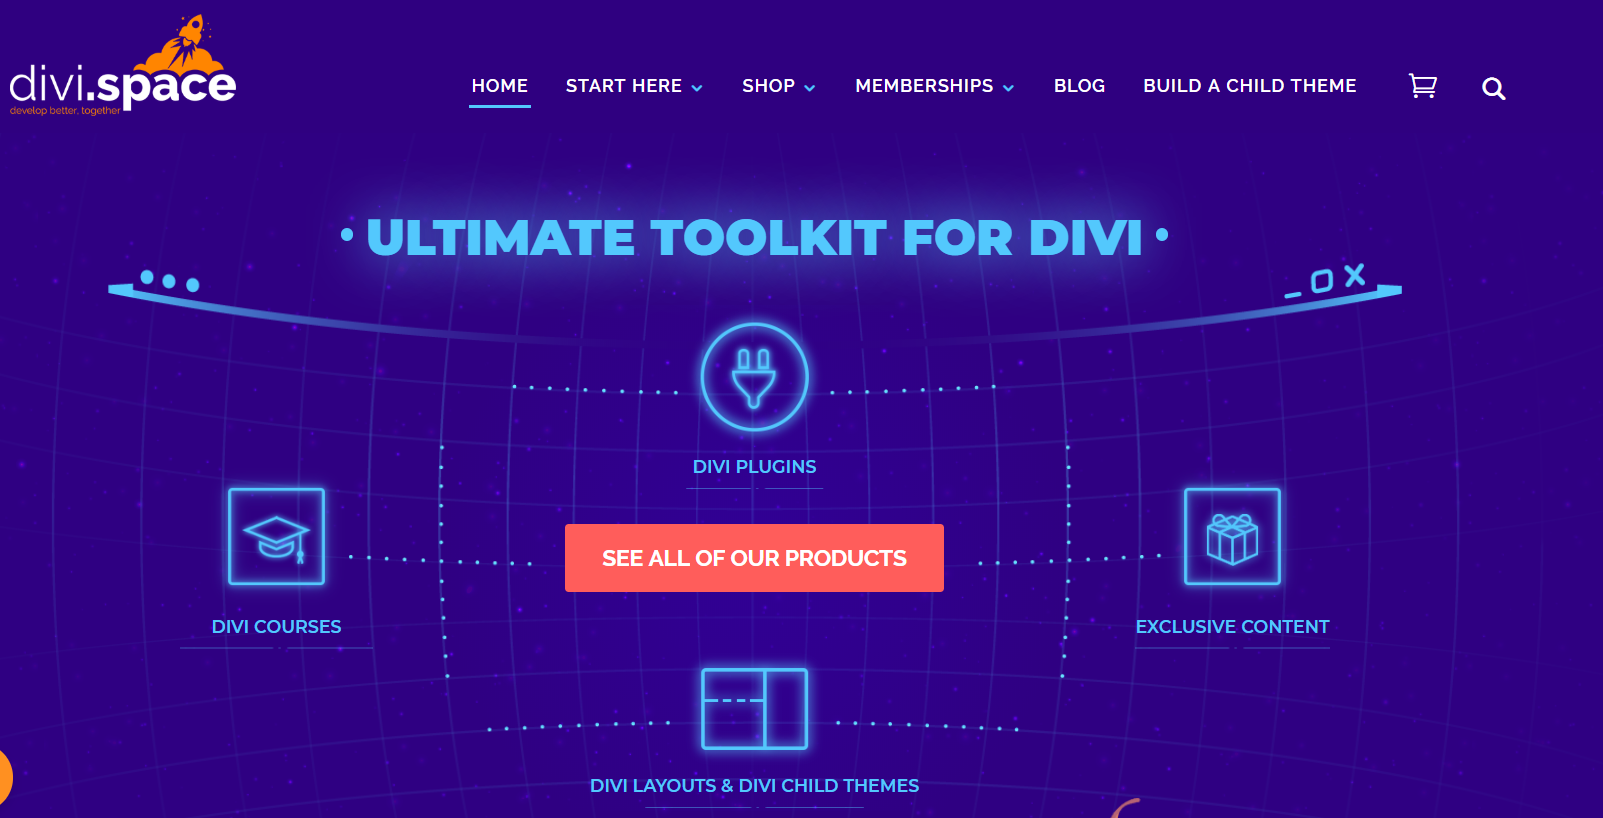 Divi Space Coupon Code